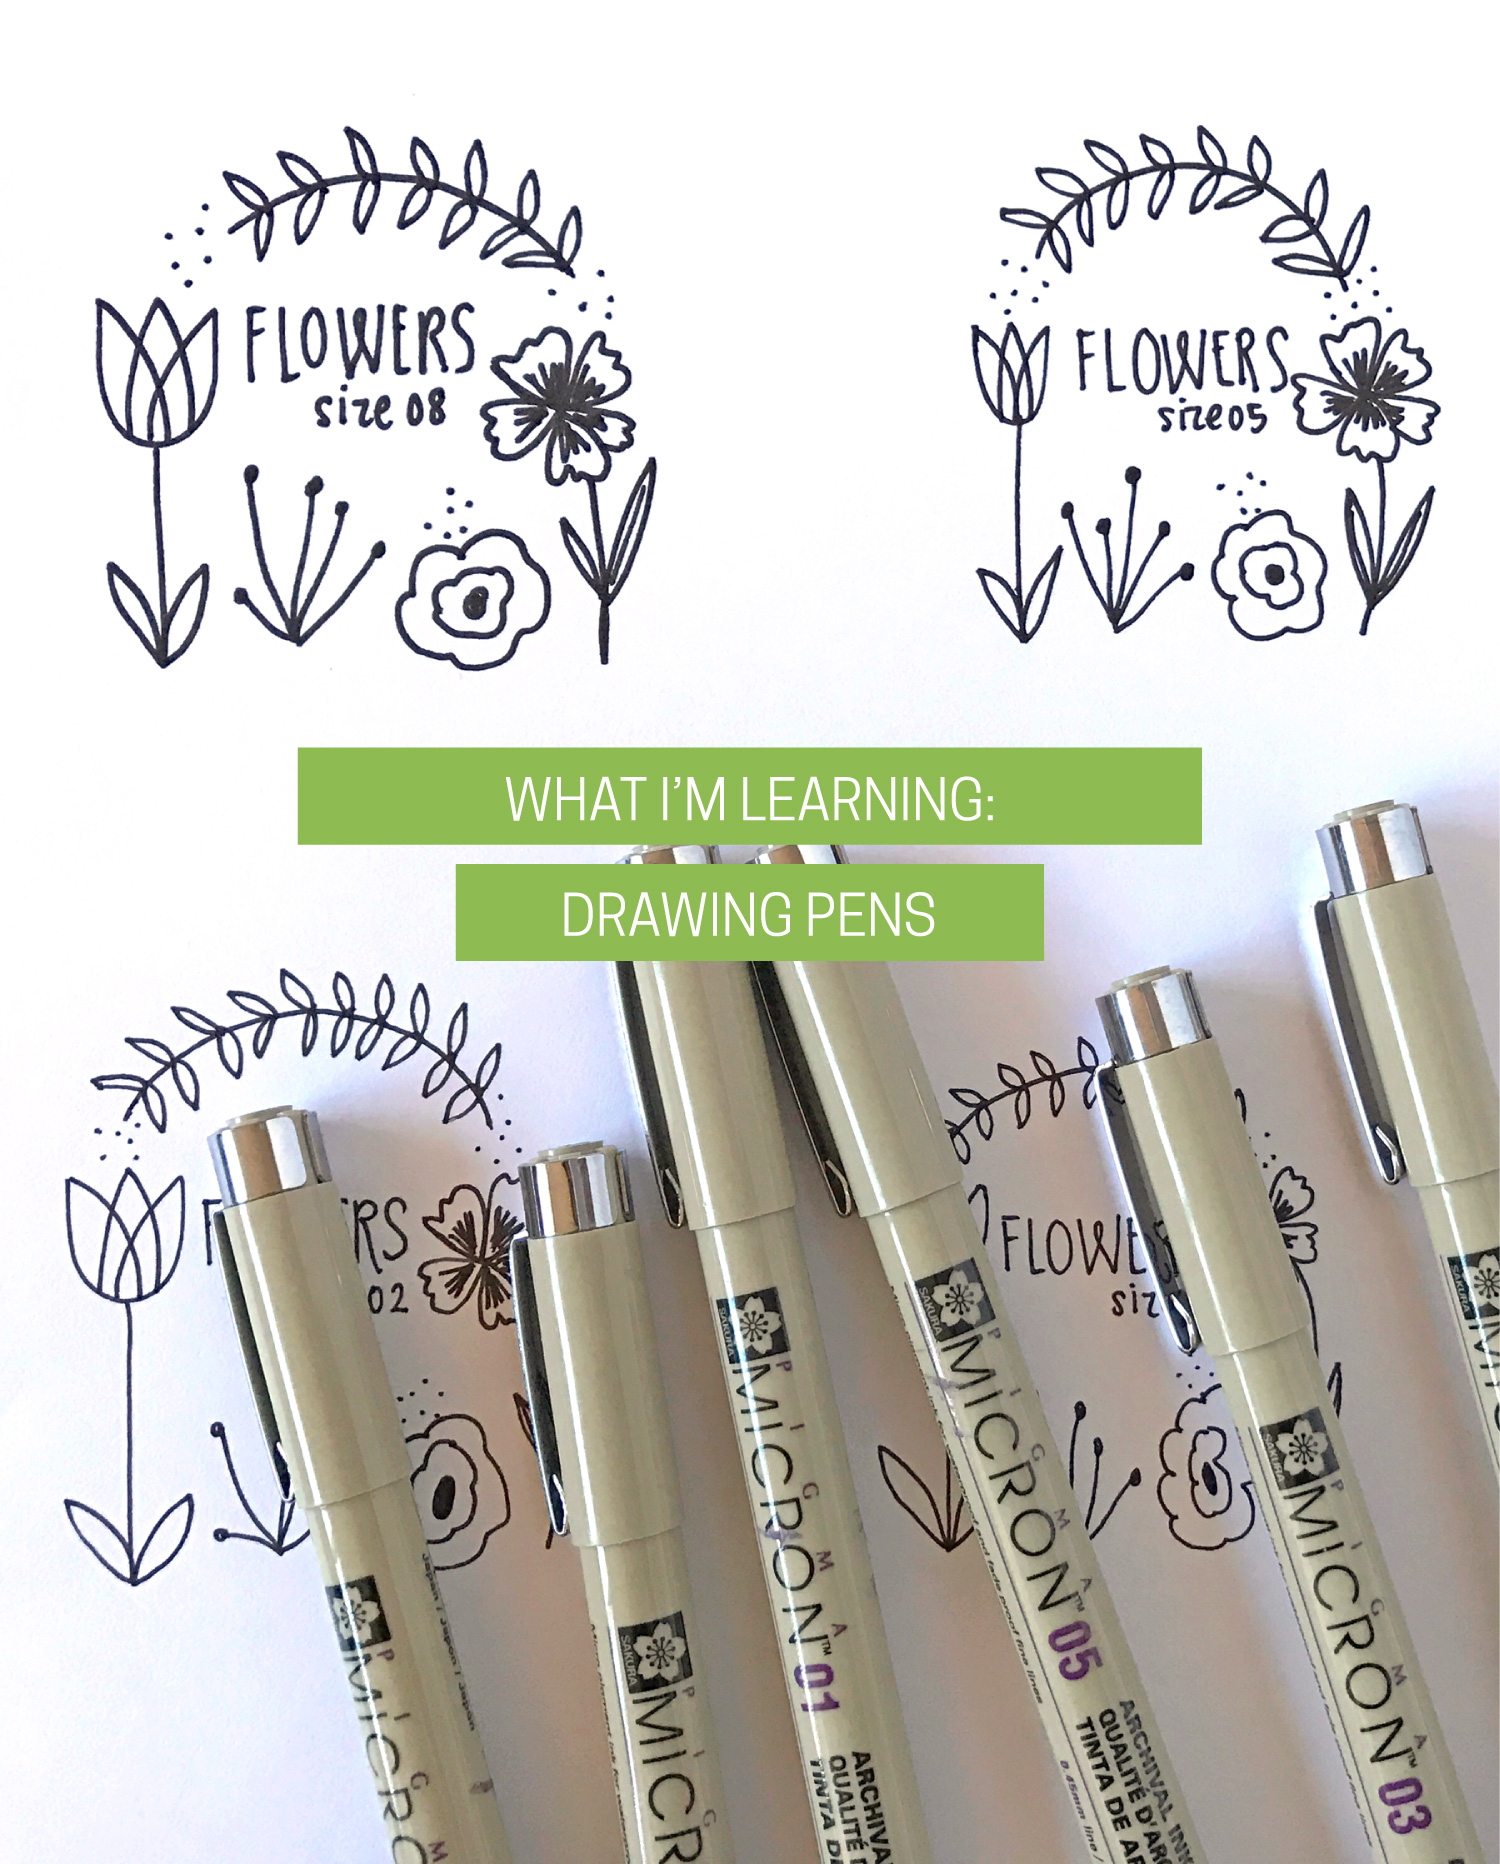 Drawing Tools: Micron Pens | Delighted Creative Co.